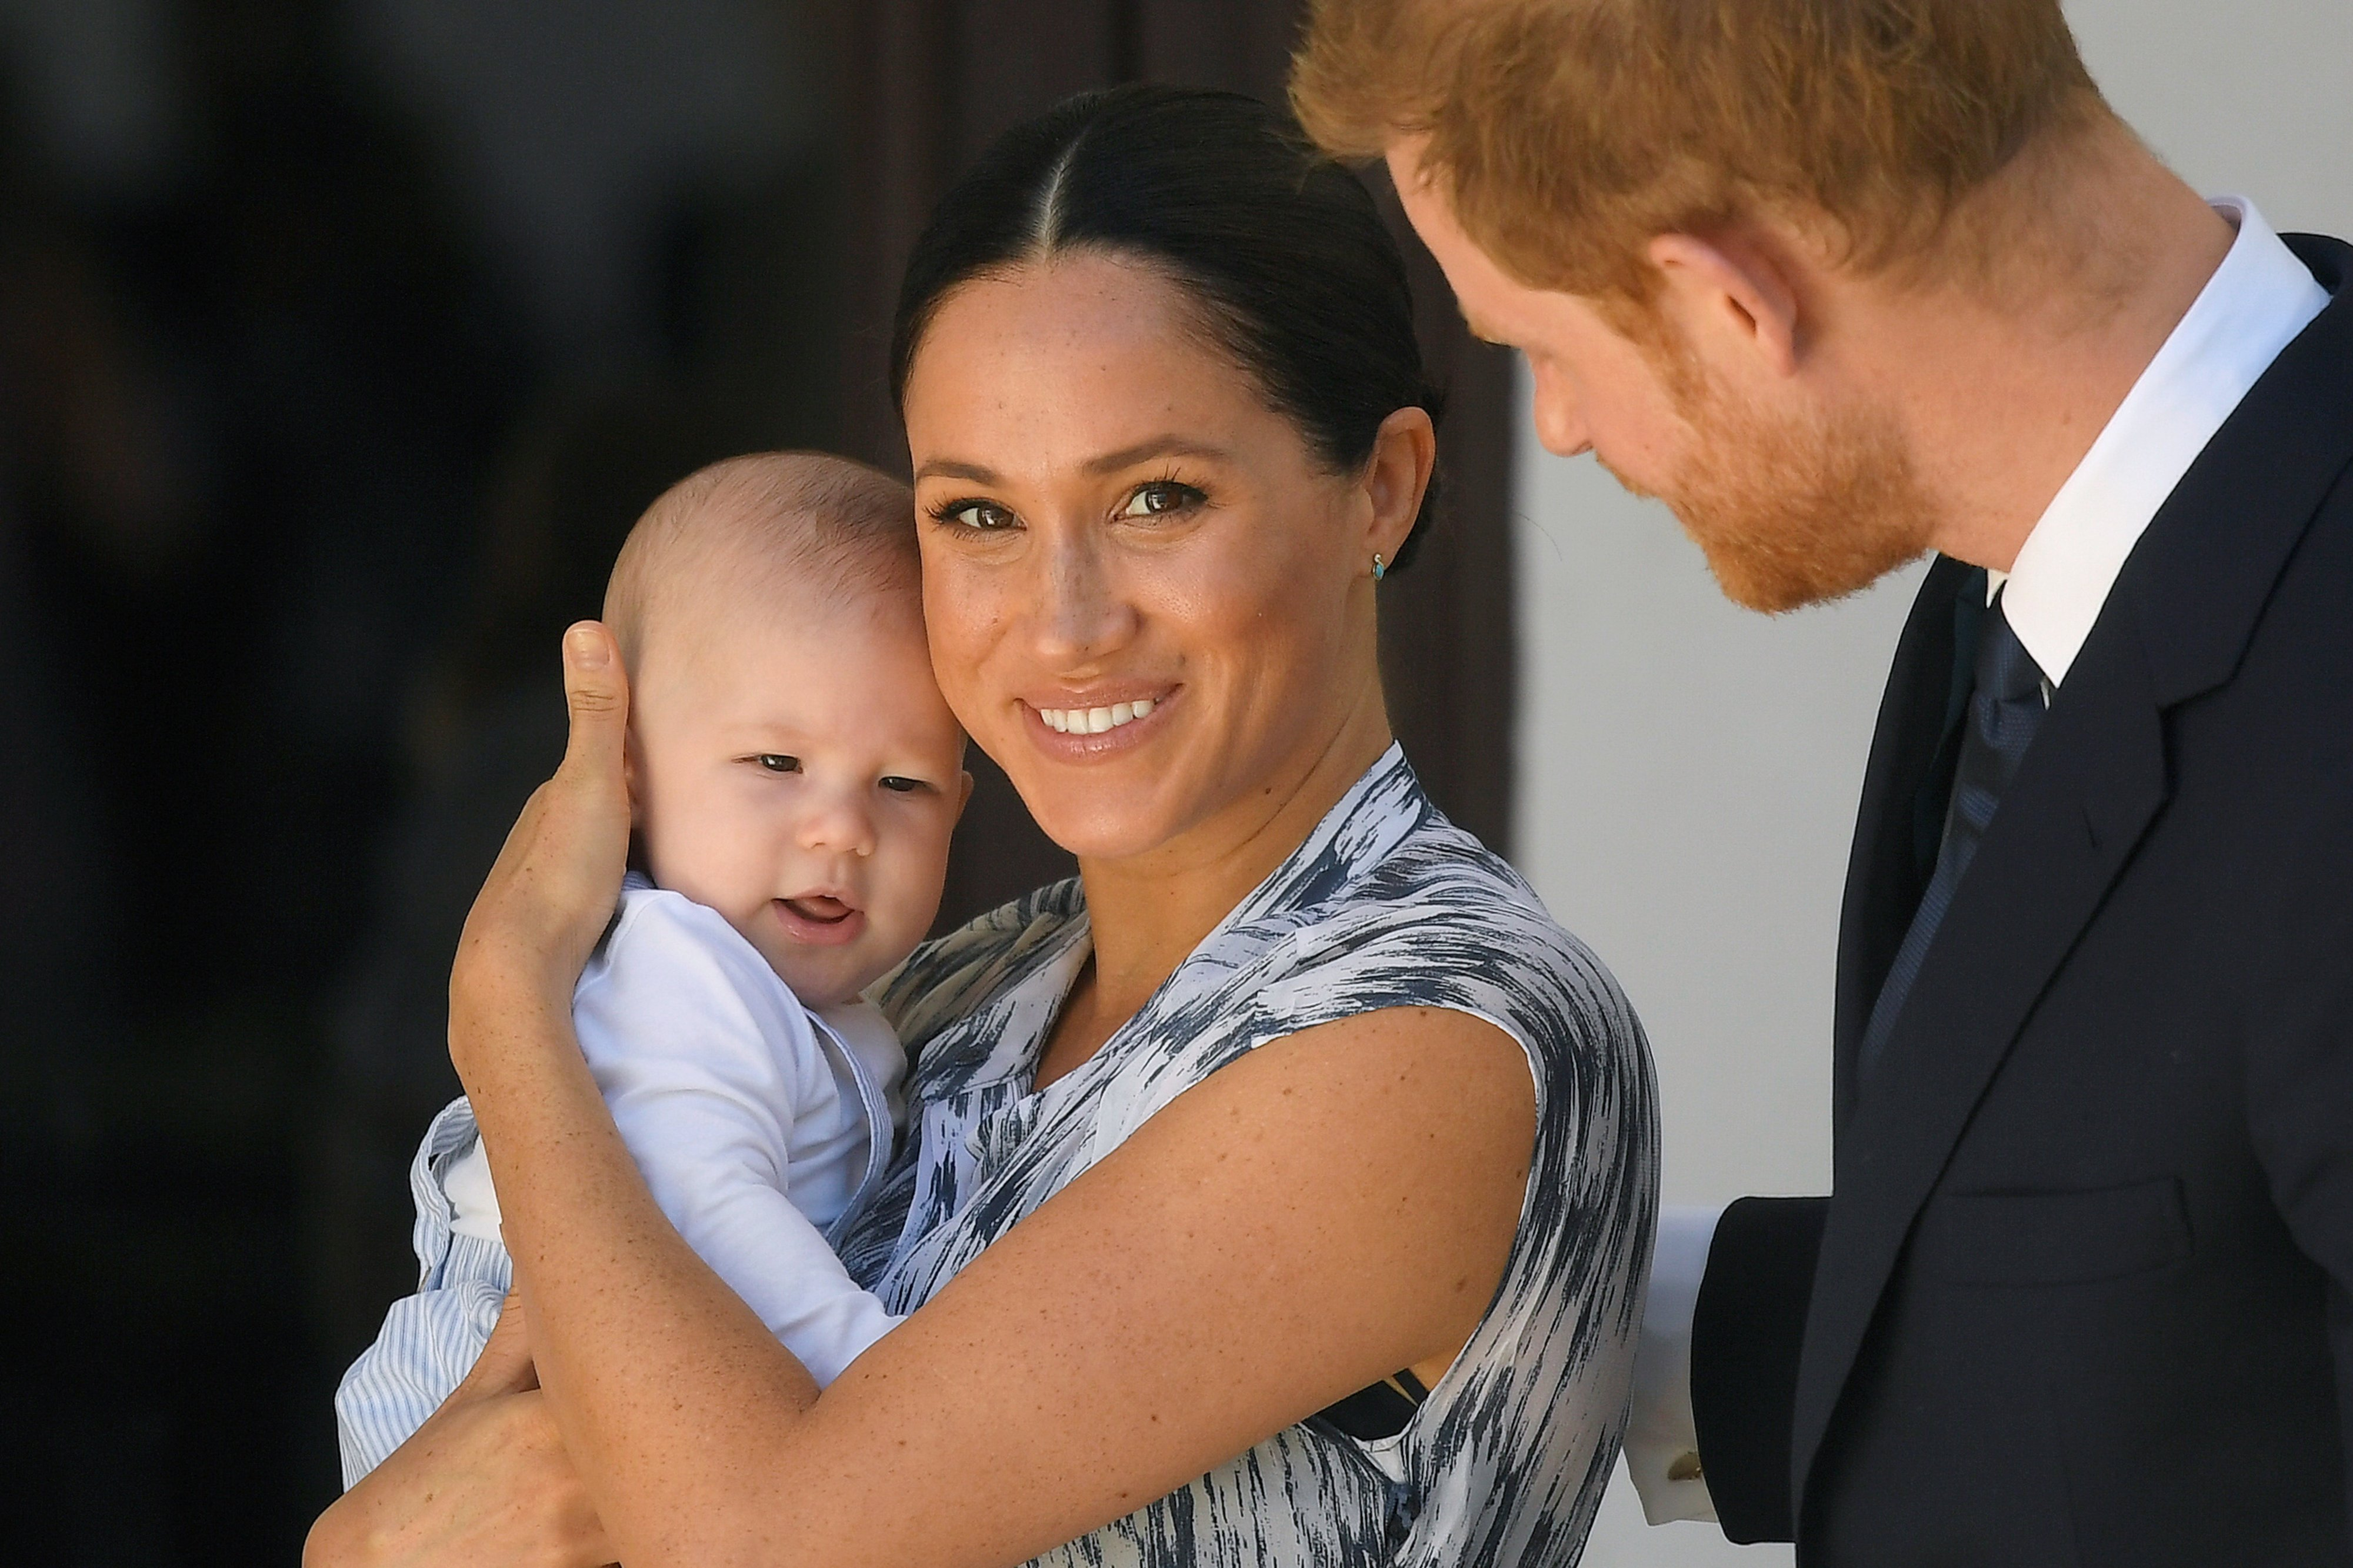 Prince Harry, Meghan Markle, and their son Archie during  during their royal tour of South Africa on September 25, 2019, in Cape Town, South Africa. | Source: Getty Images.